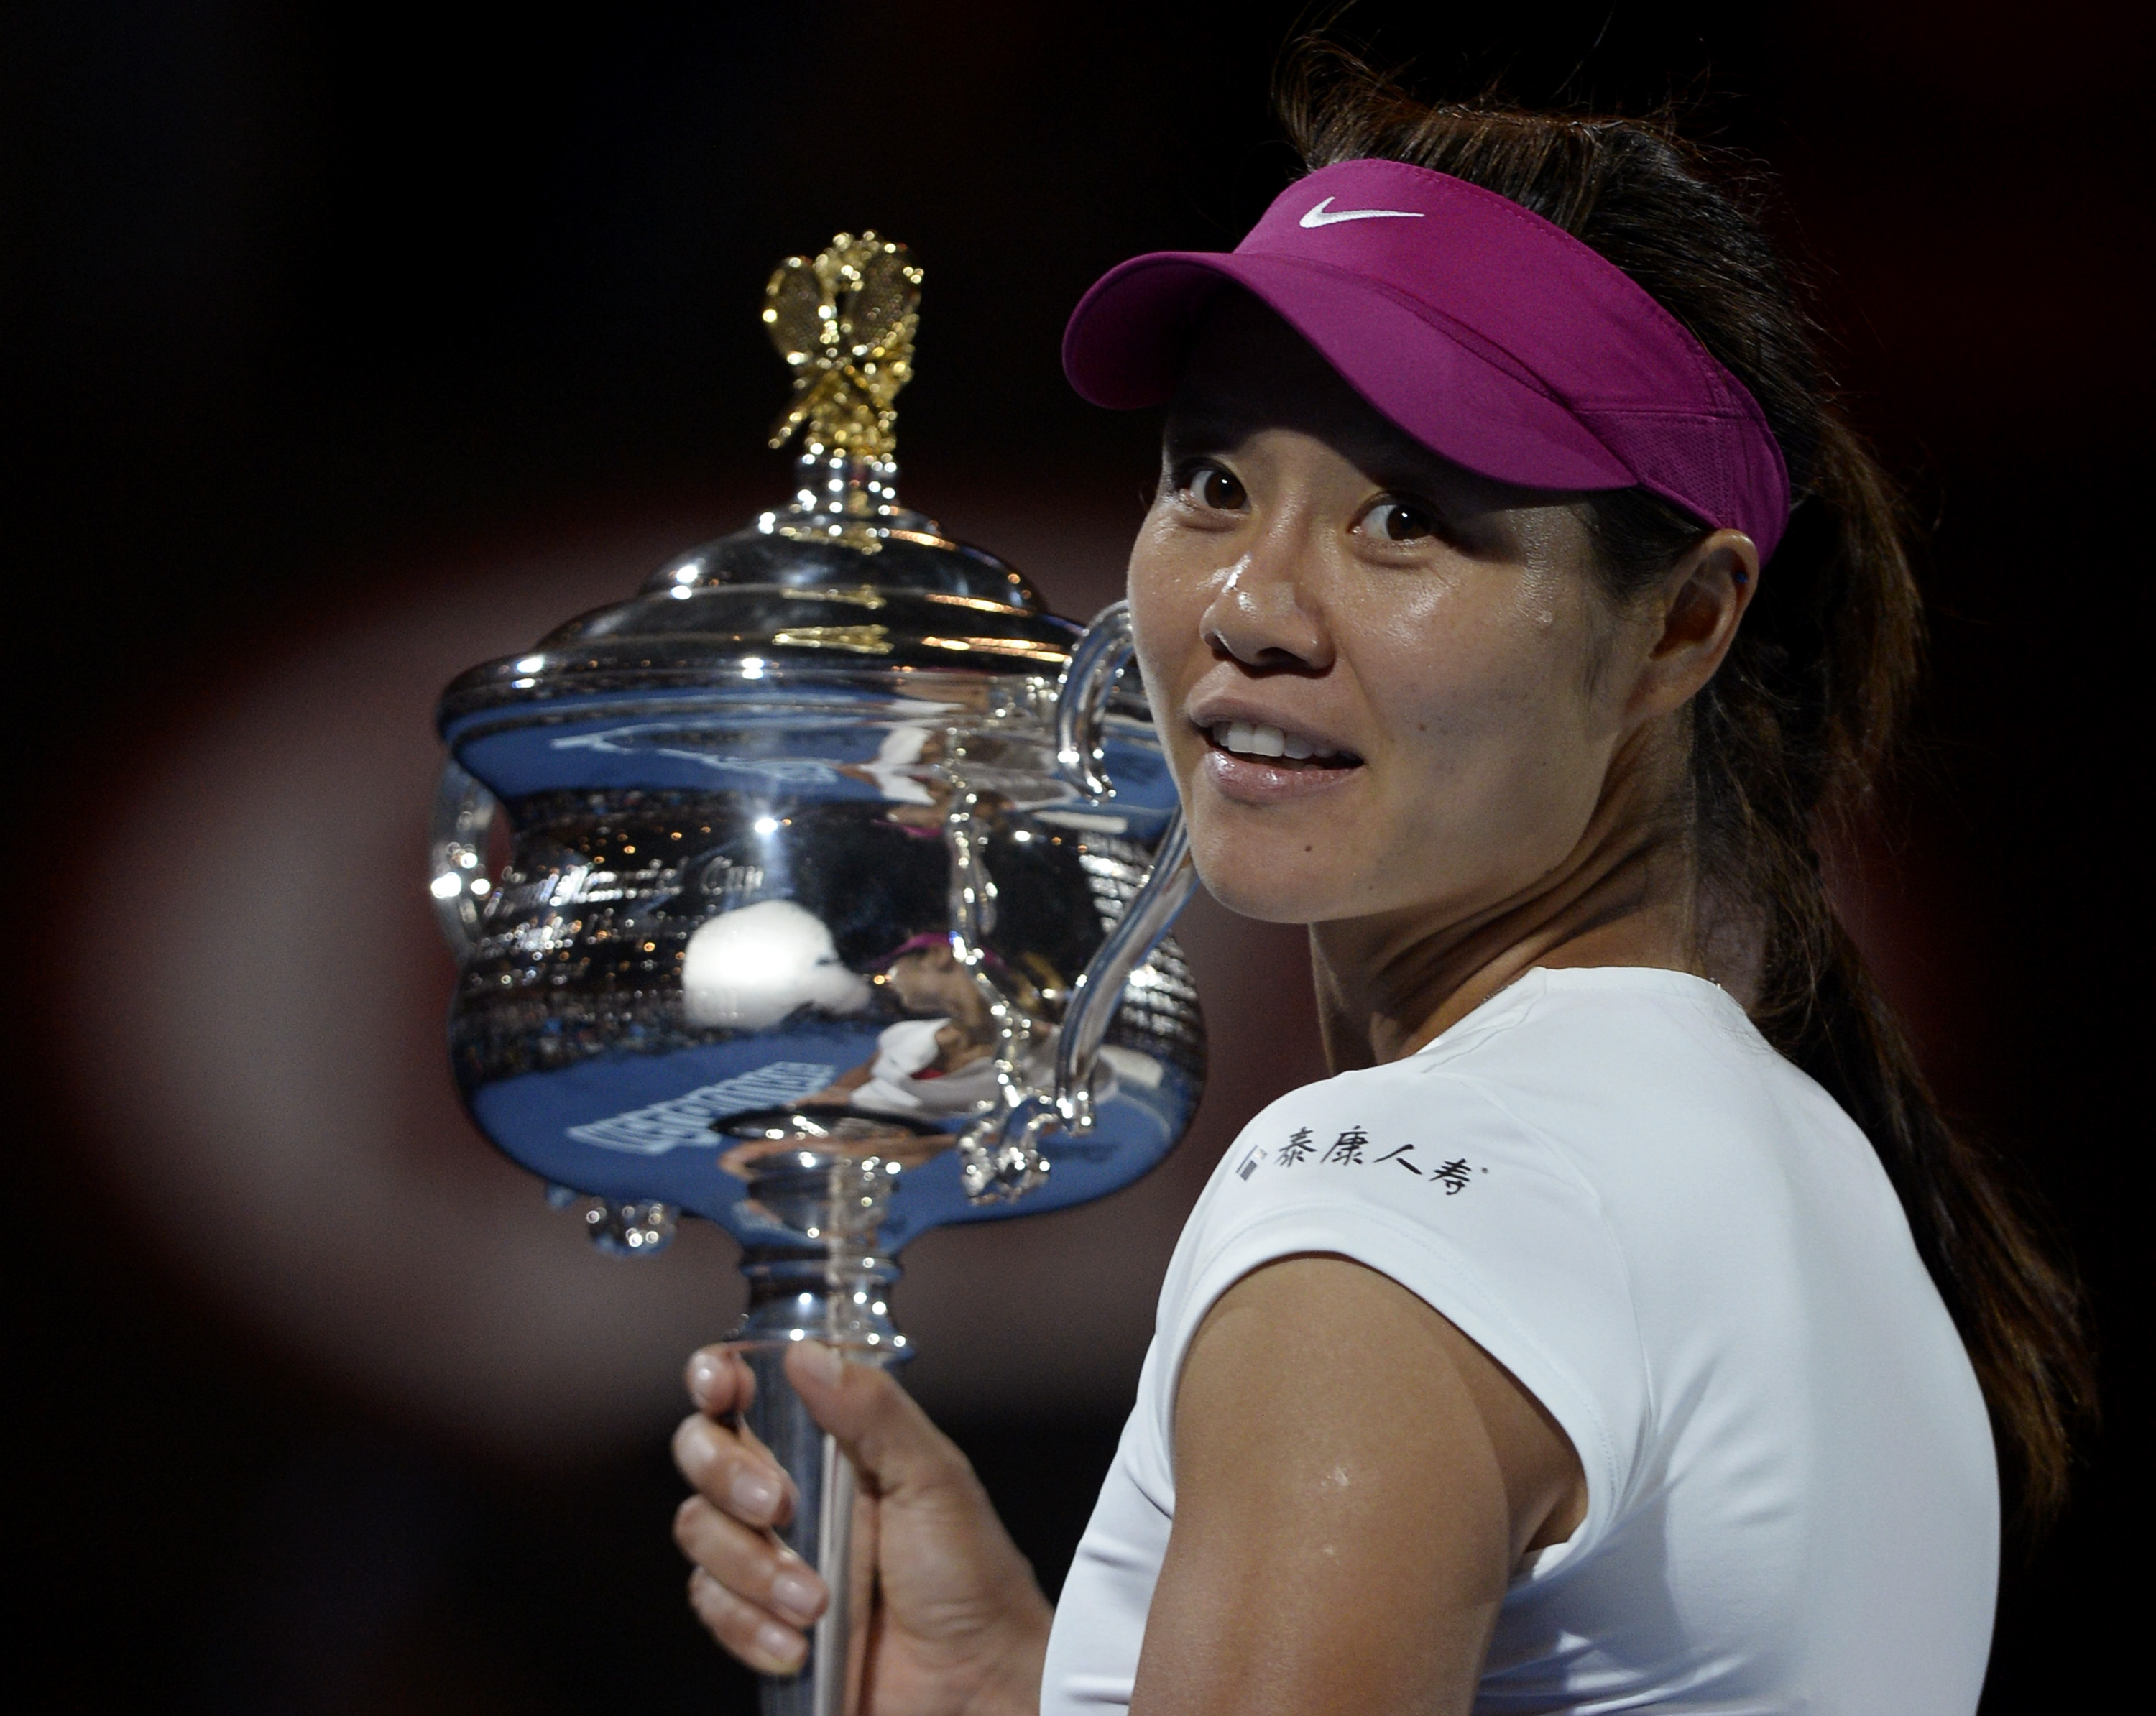 Li Na of China holds the championship trophy after defeating Dominika Cibulkova of Slovakia in their women's singles final at the Australian Open tennis championship in Melbourne, Australia, Saturday, Jan. 25, 2014.(AP Photo/Andrew Brownbill)